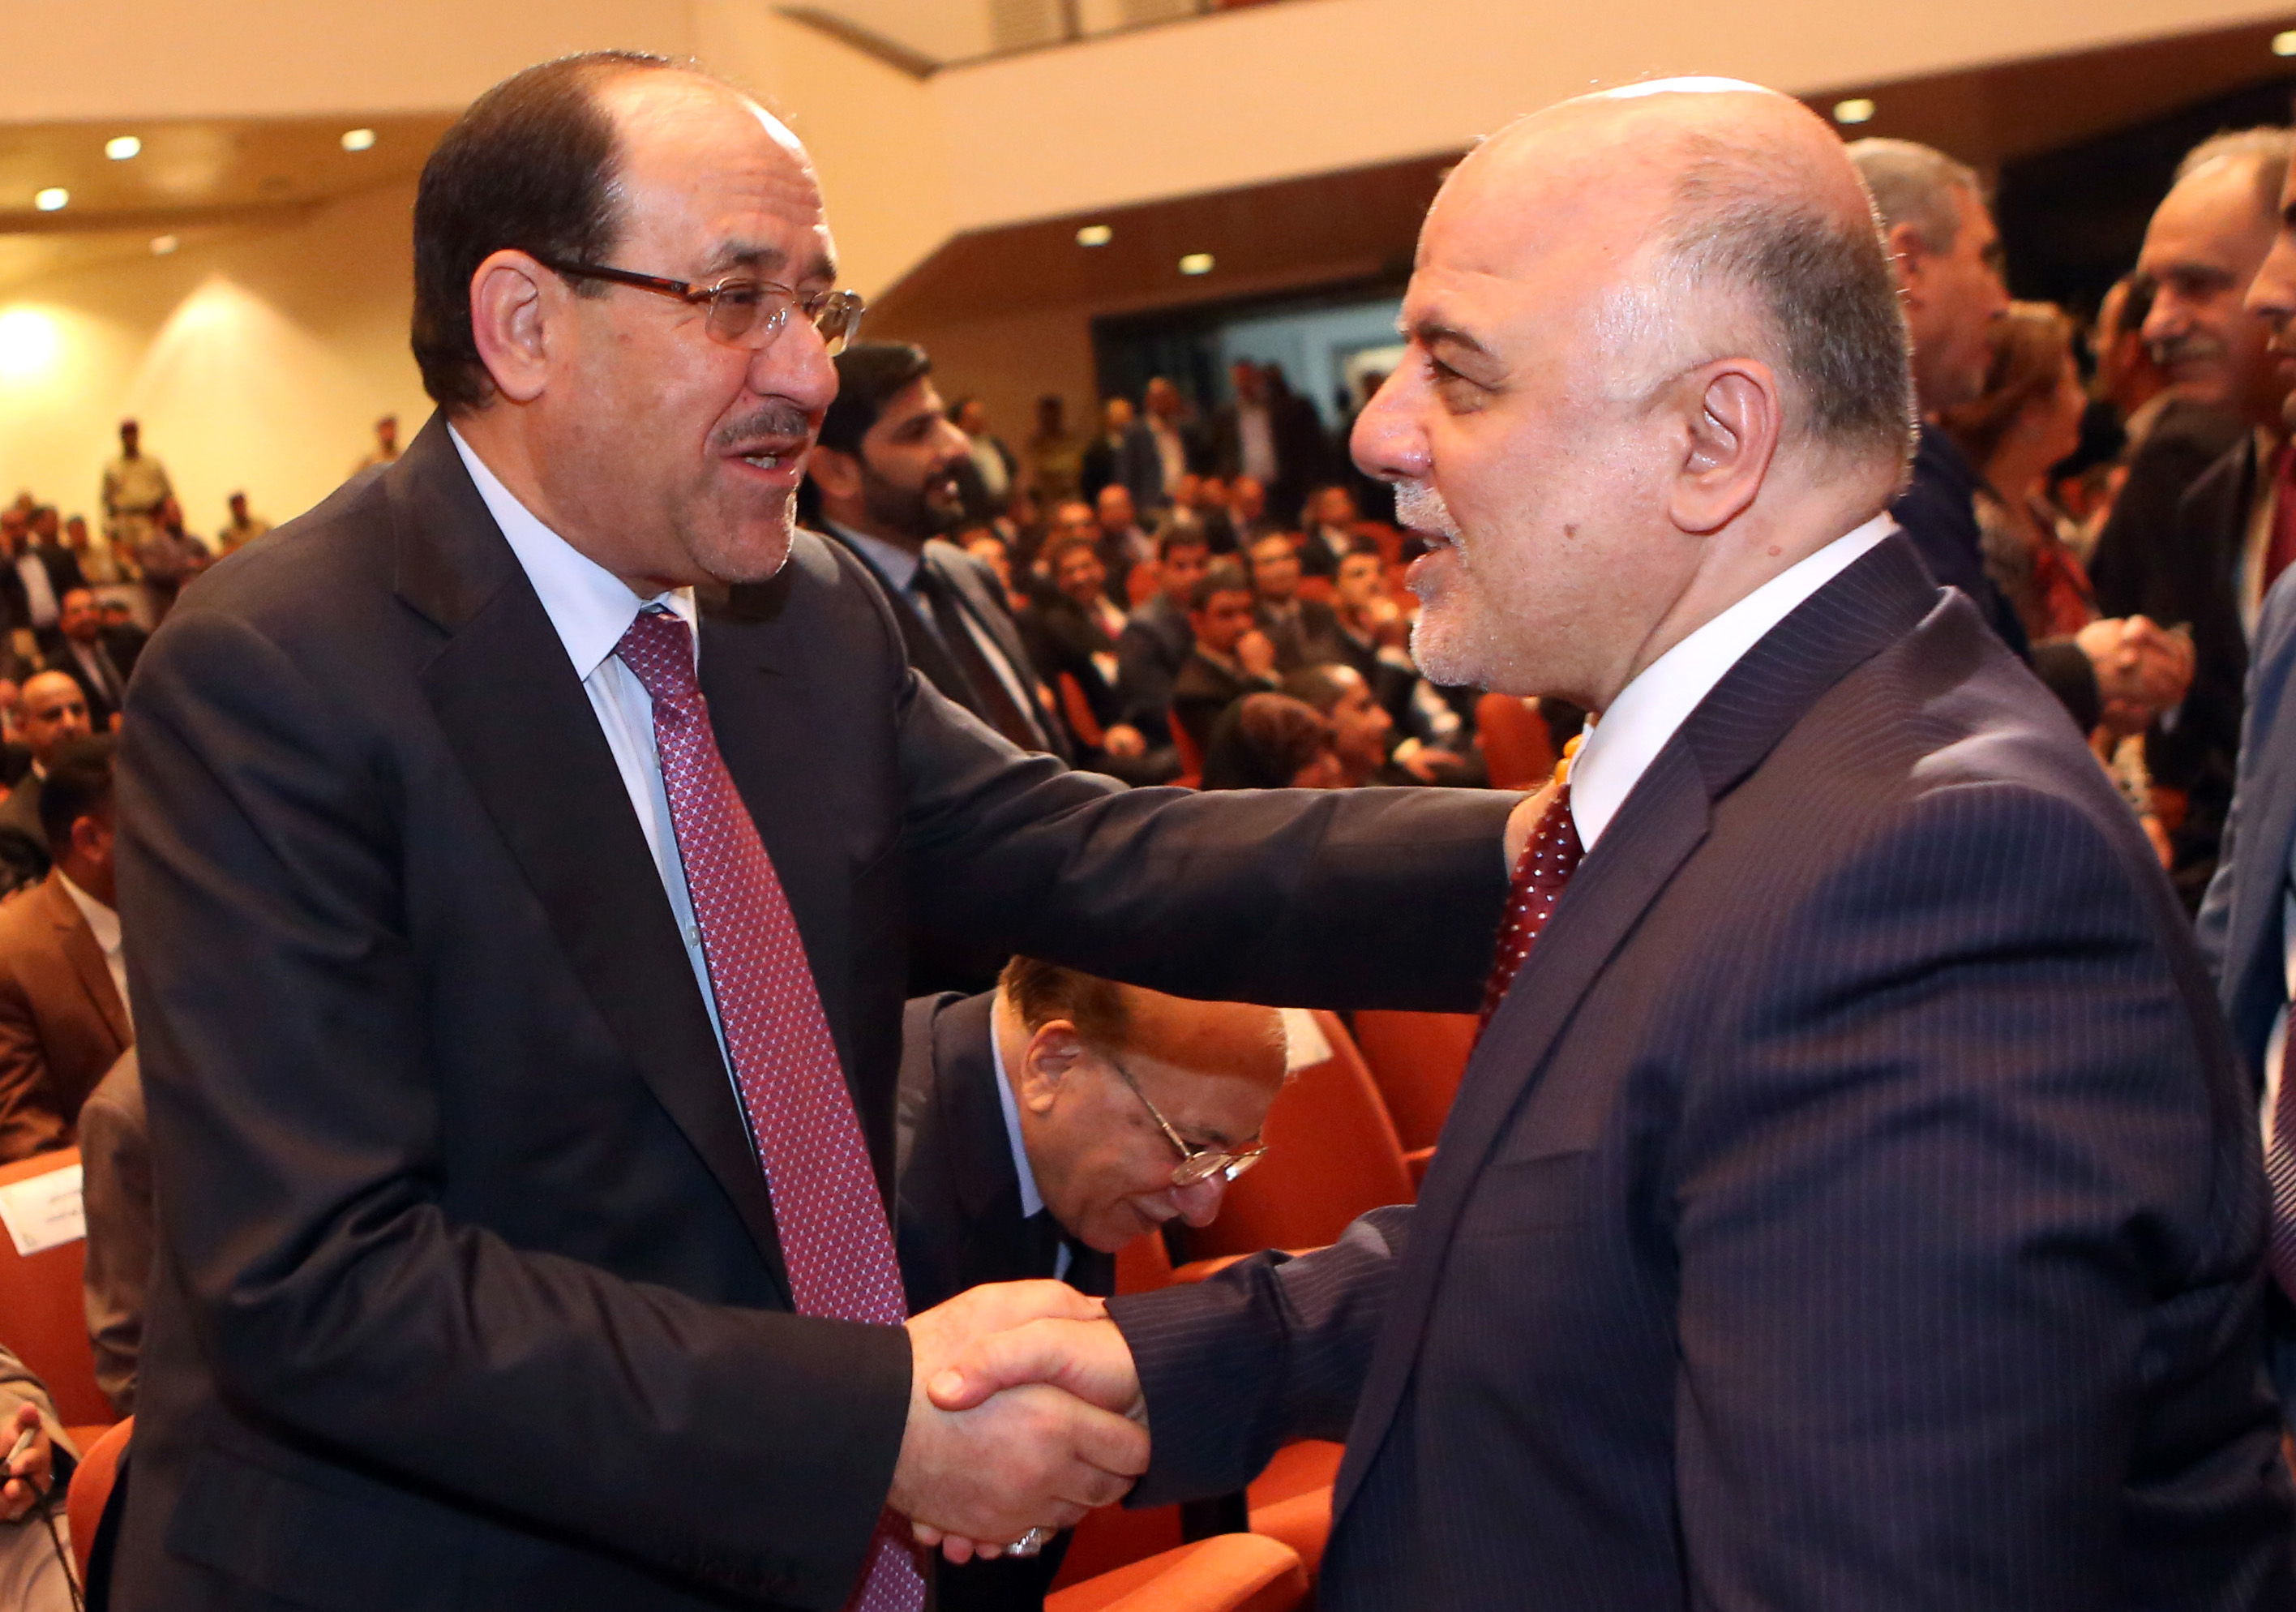 Al-Maliki is flirting with Iran ... and his eye is on power in Iraq 000_Nic6369028